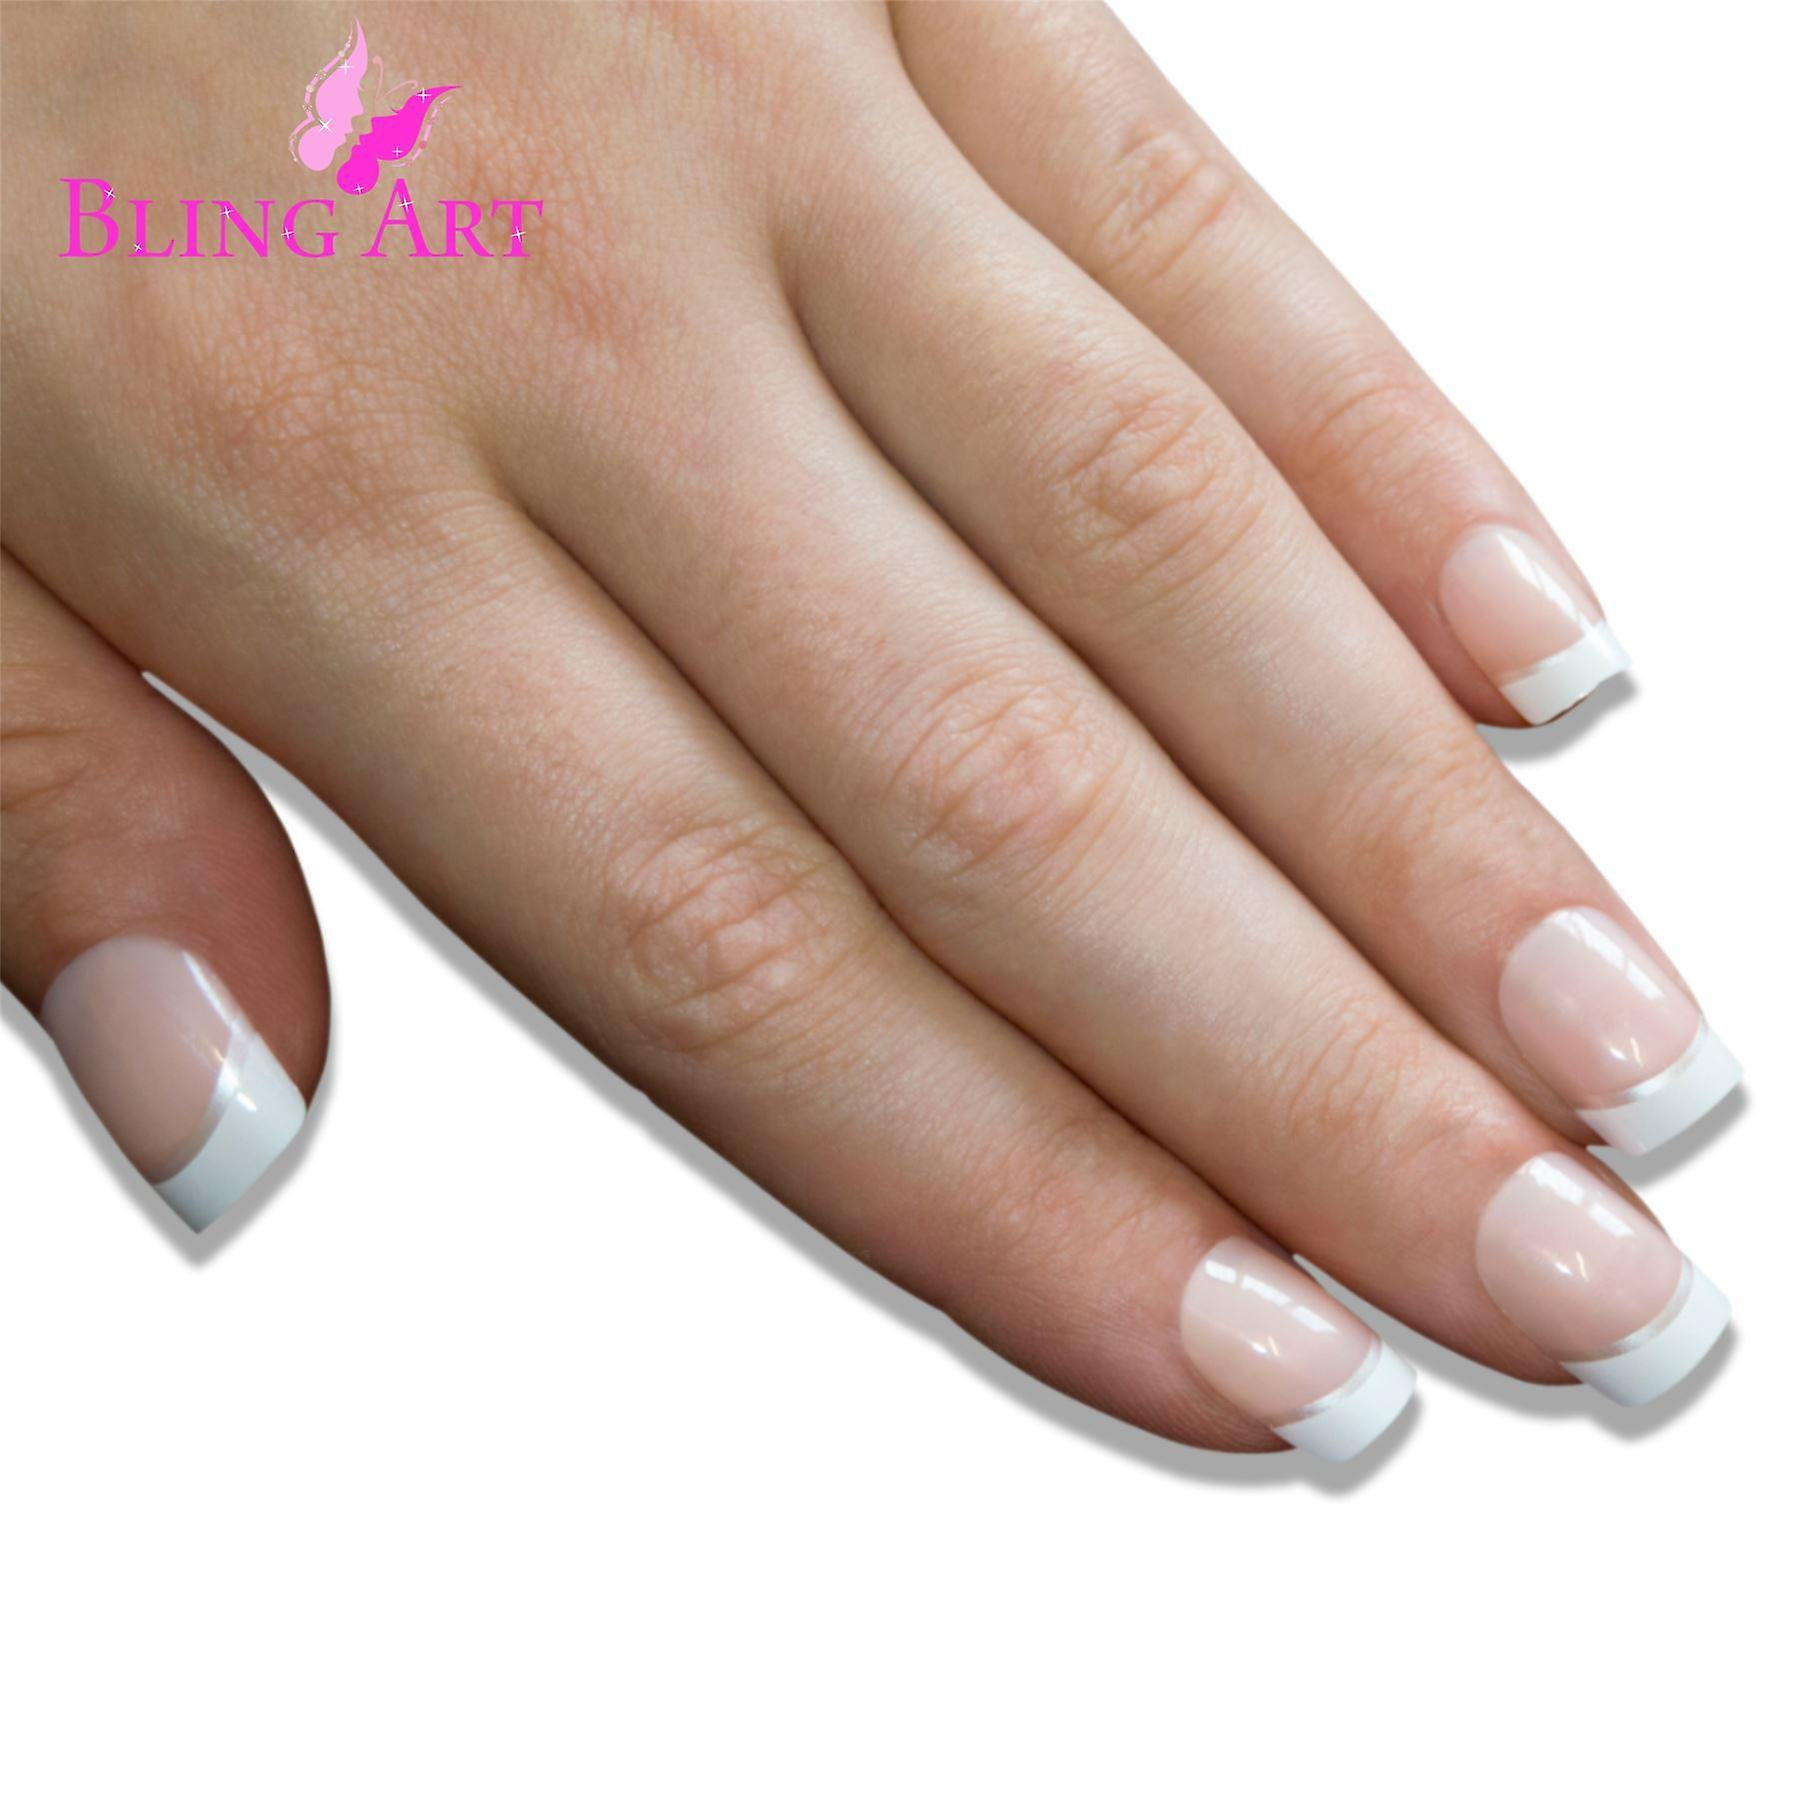 False nails by bling art white silver french manicure fake medium tips with glue